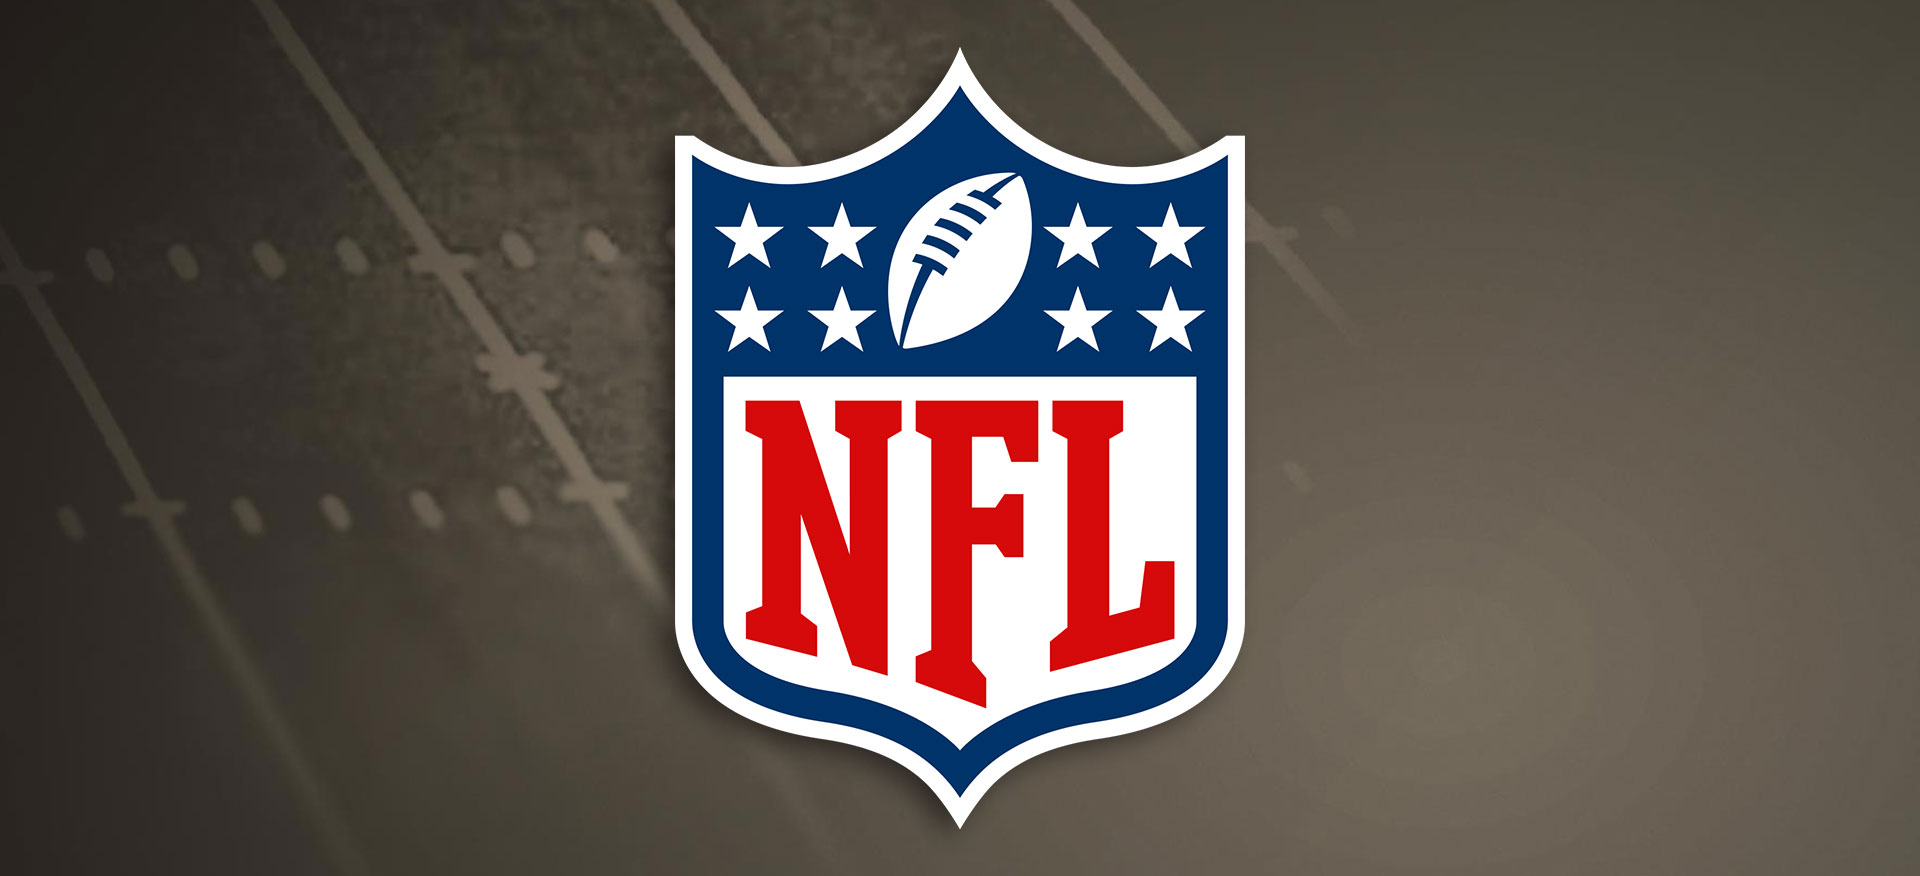 NFL Football Generic